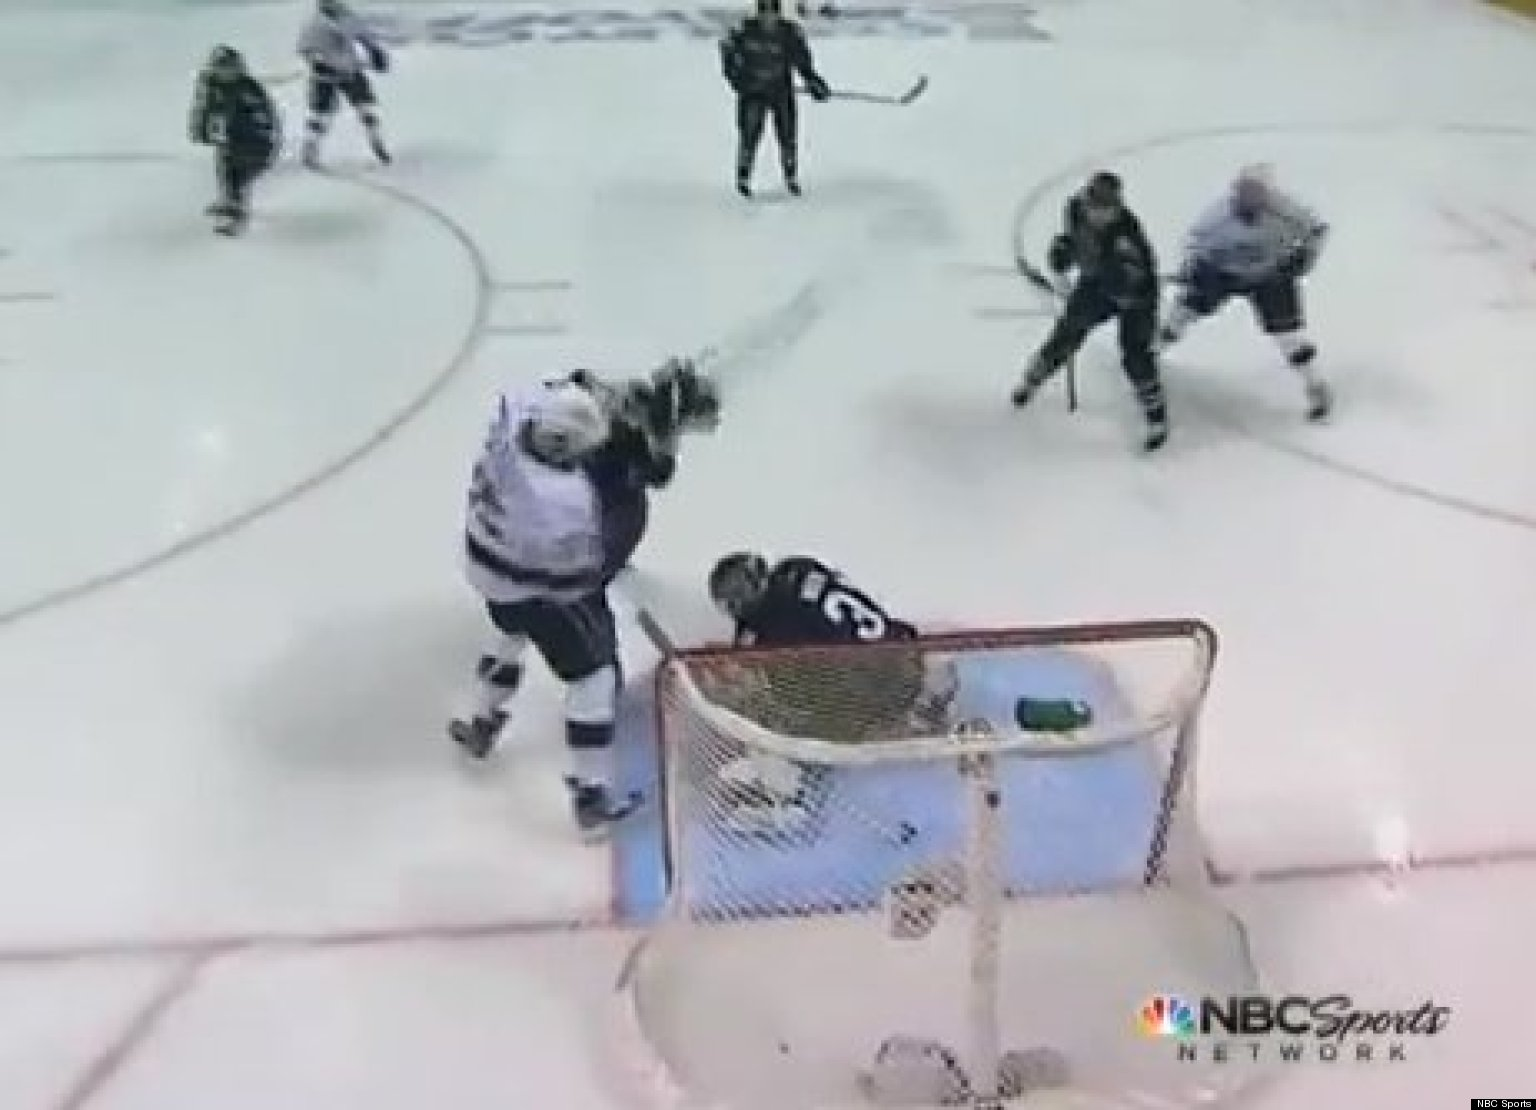 WATCH: Early Whistle Robs Kings Of Goal